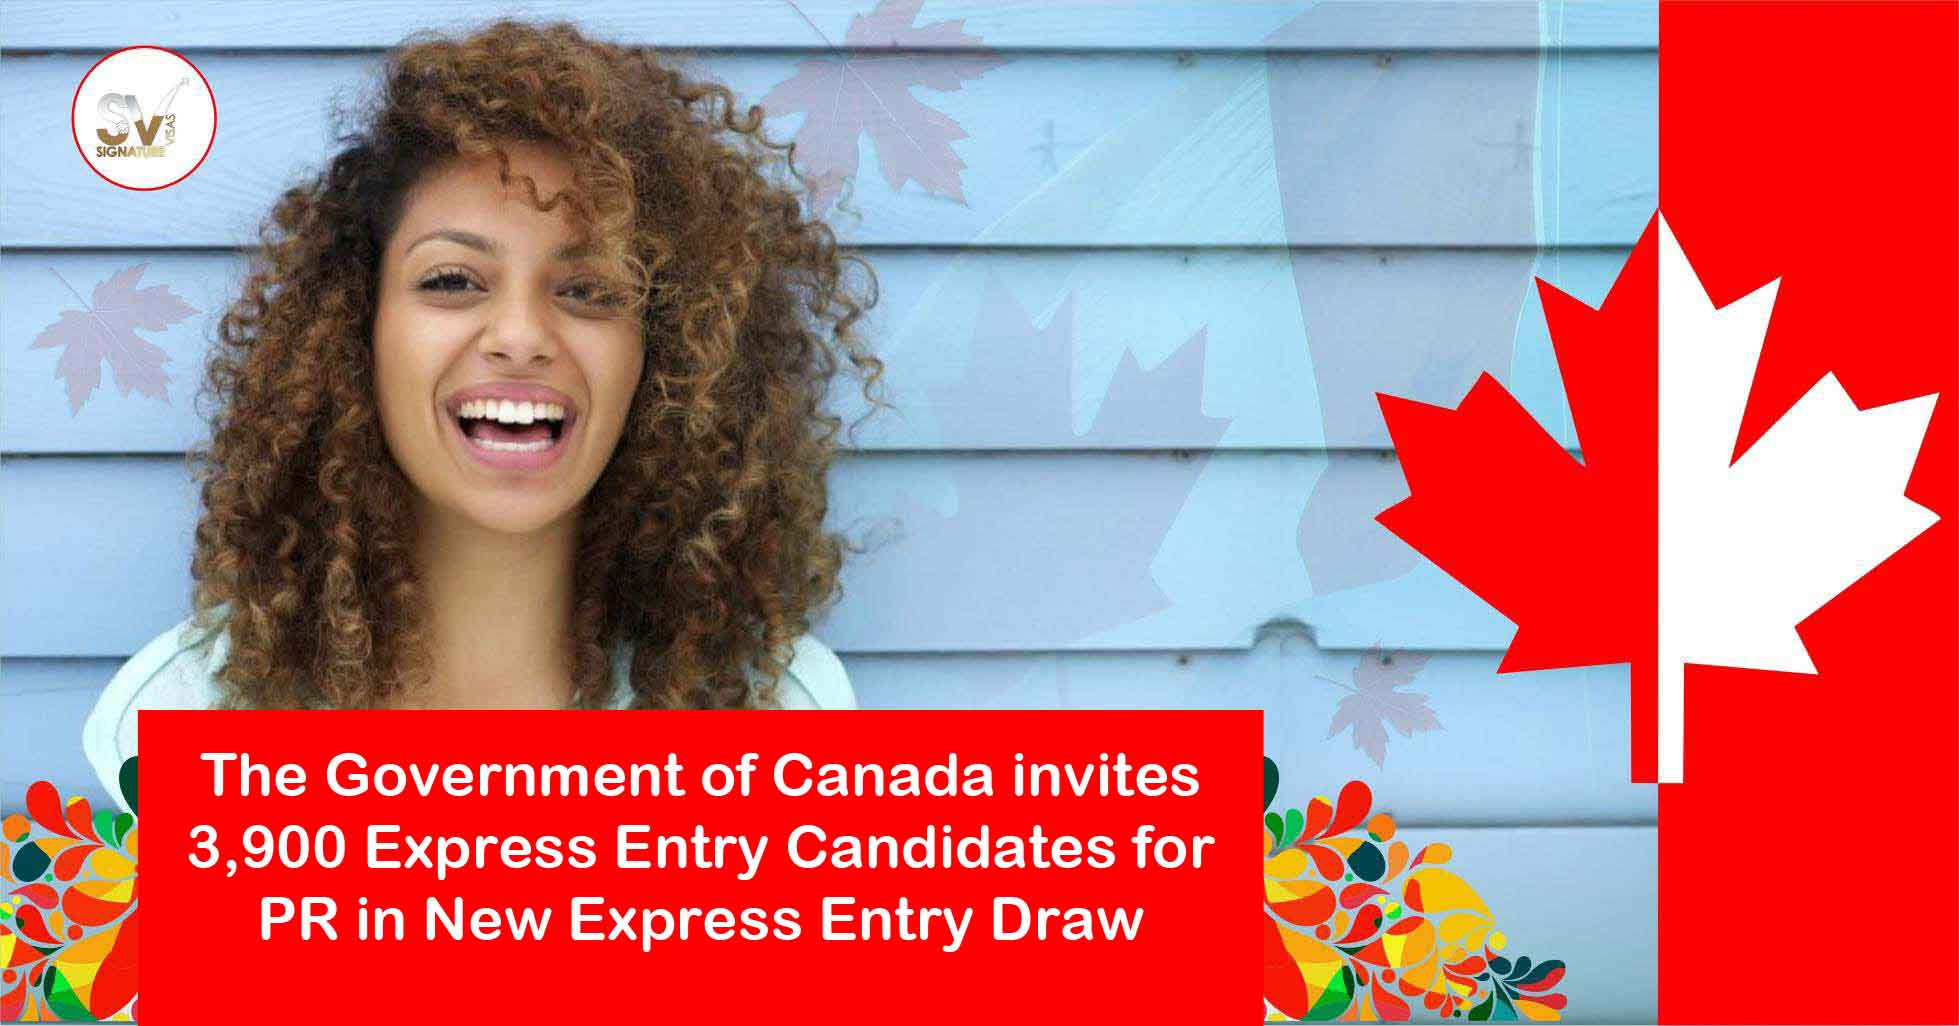 The Government of Canada invites 3900 Express Entry